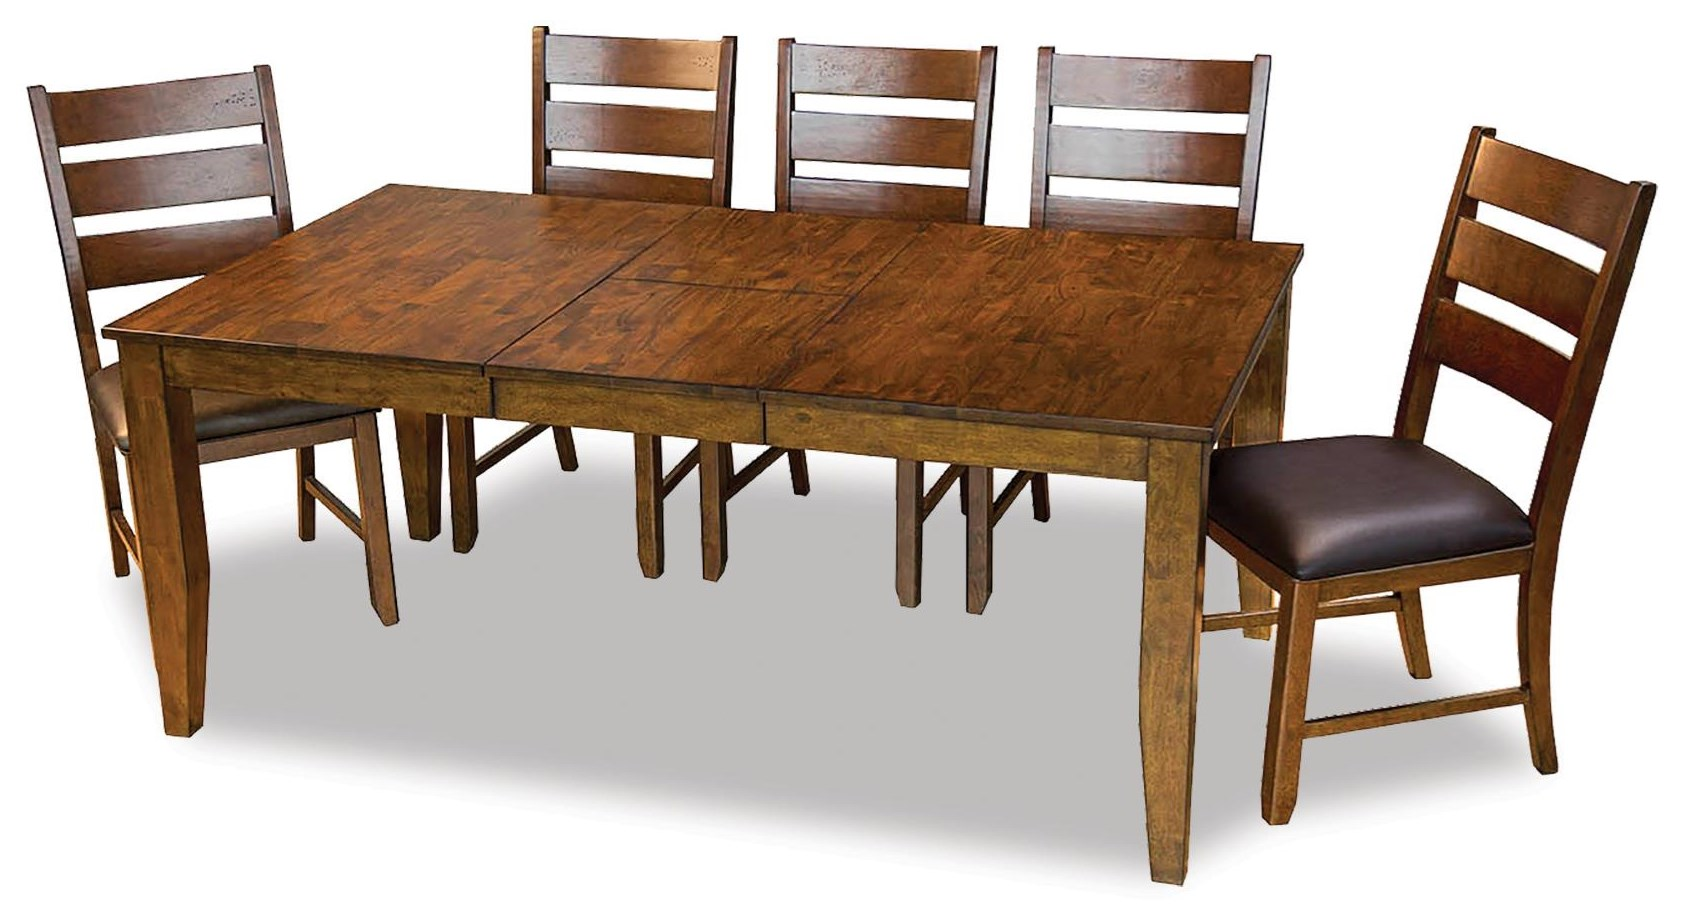 Mason Rectangular Butterfly Table With 6 Chairs by AAmerica at Johnny Janosik